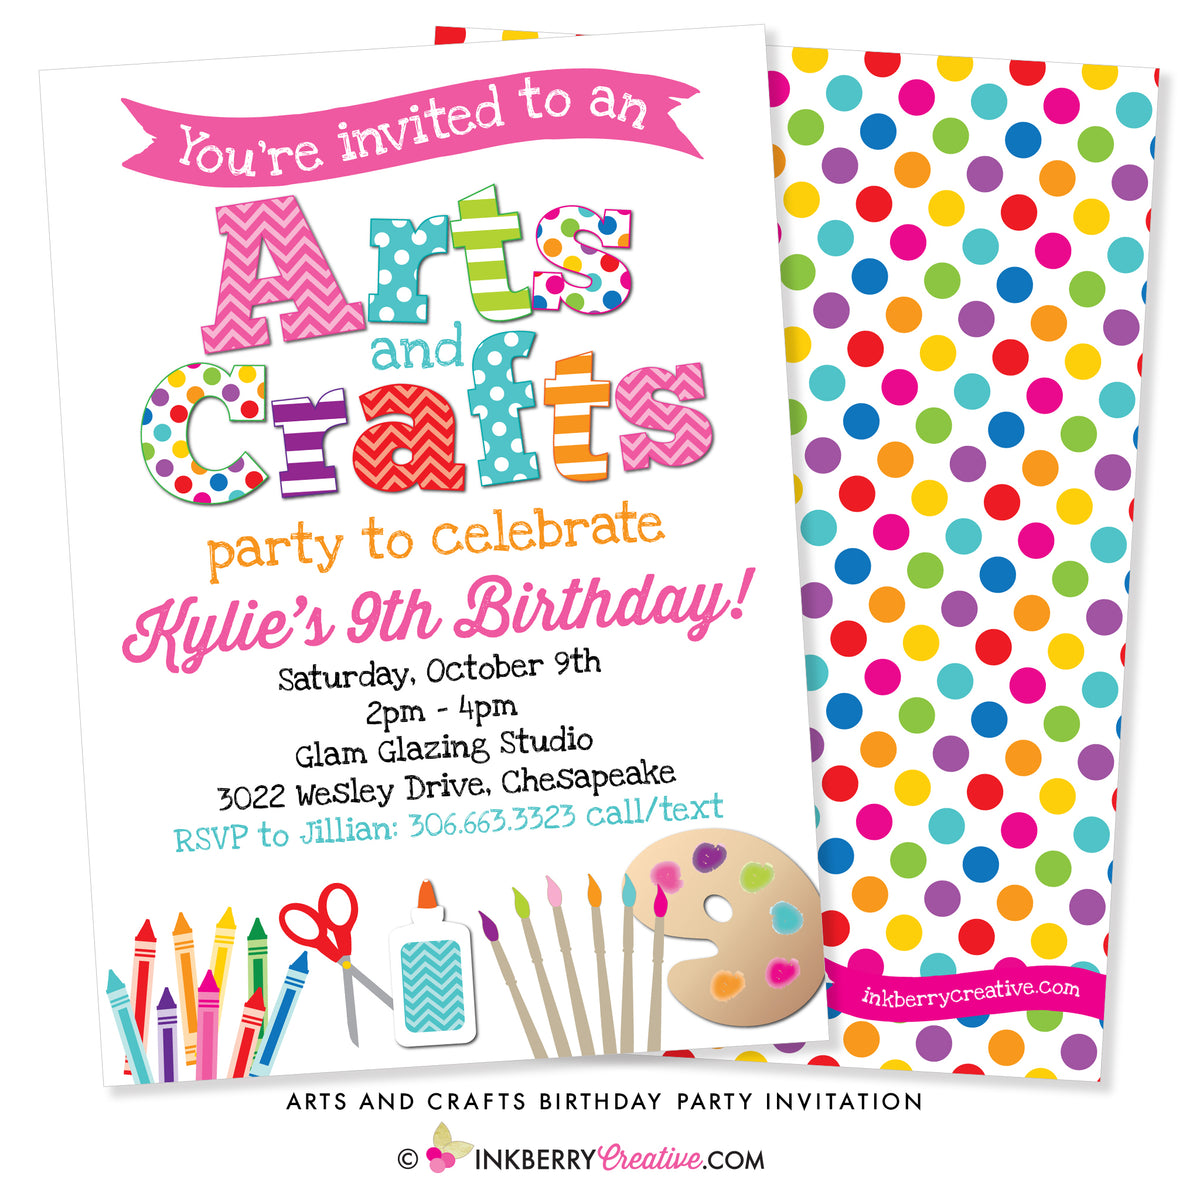 Arts And Crafts Birthday Party Invitation Inkberry Creative Inc